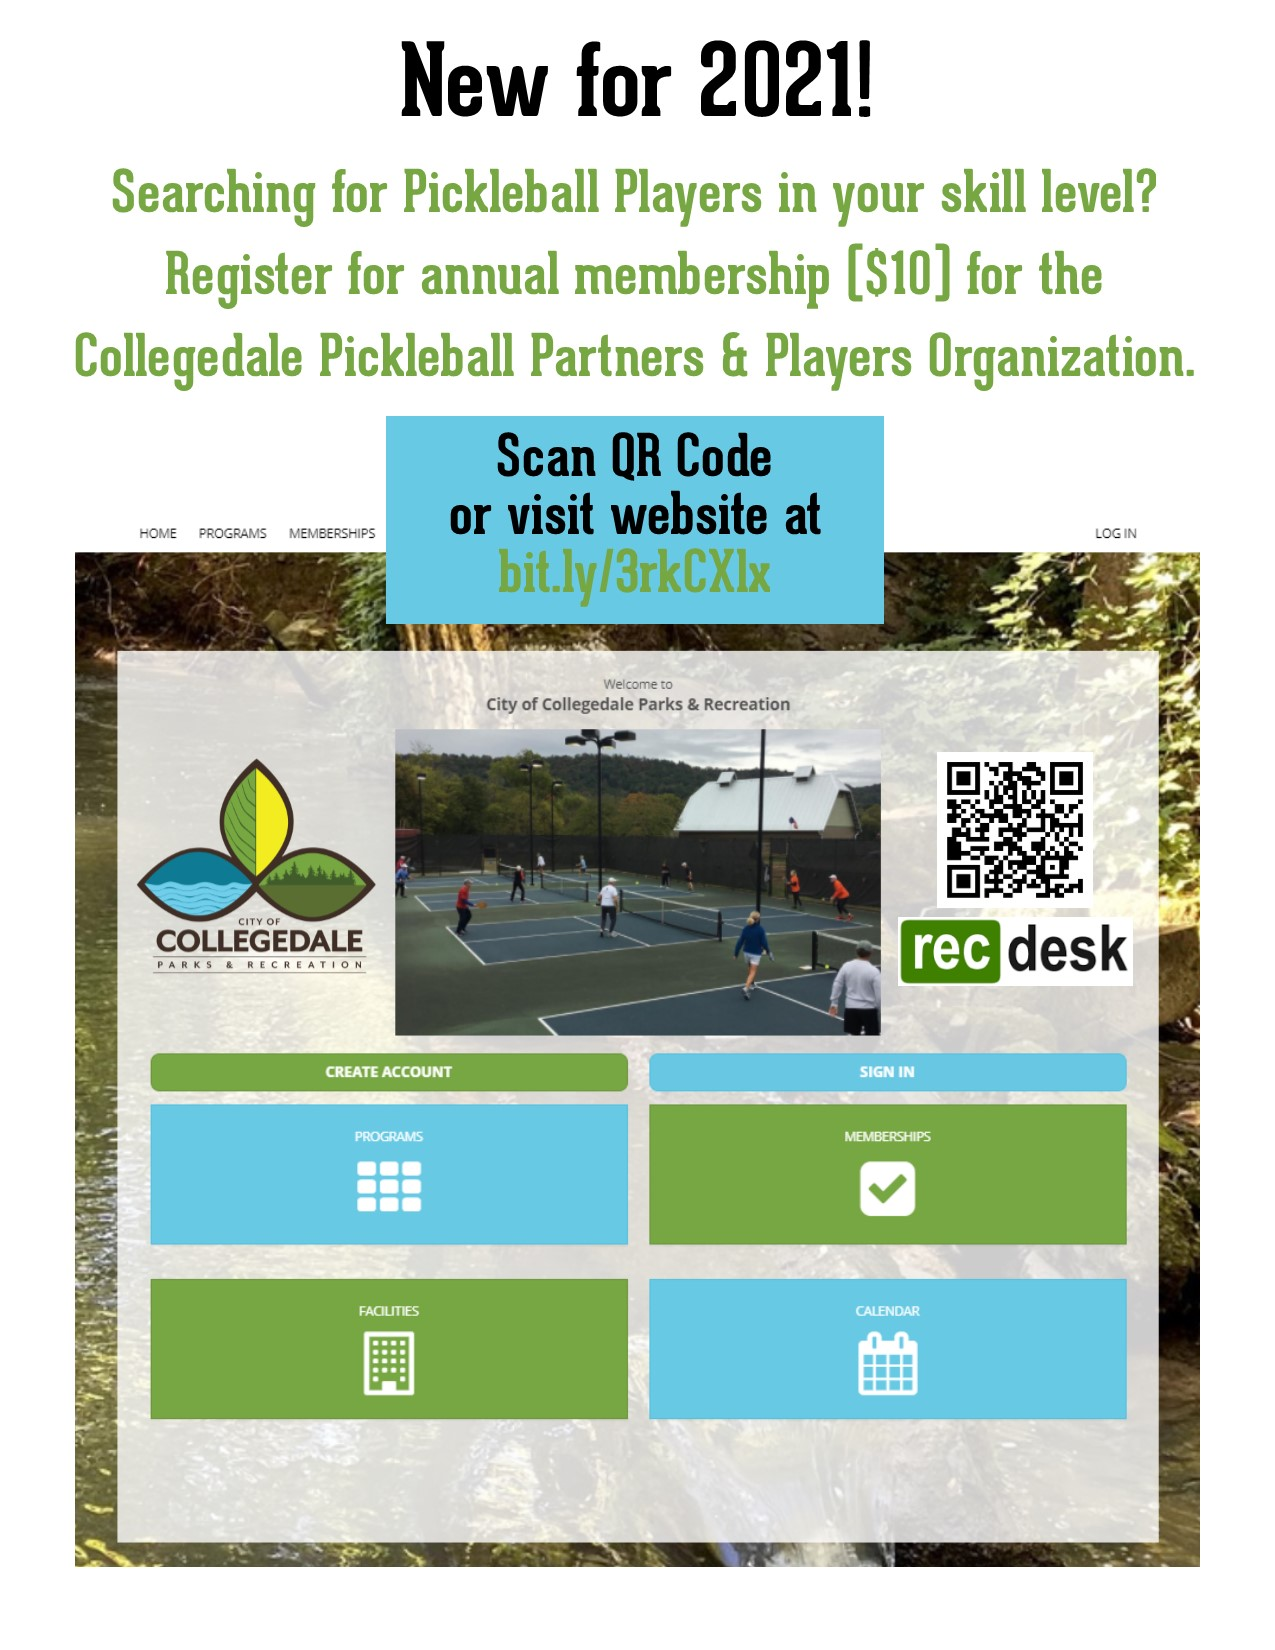 RecDesk-Registration-PICKLEBALL-web